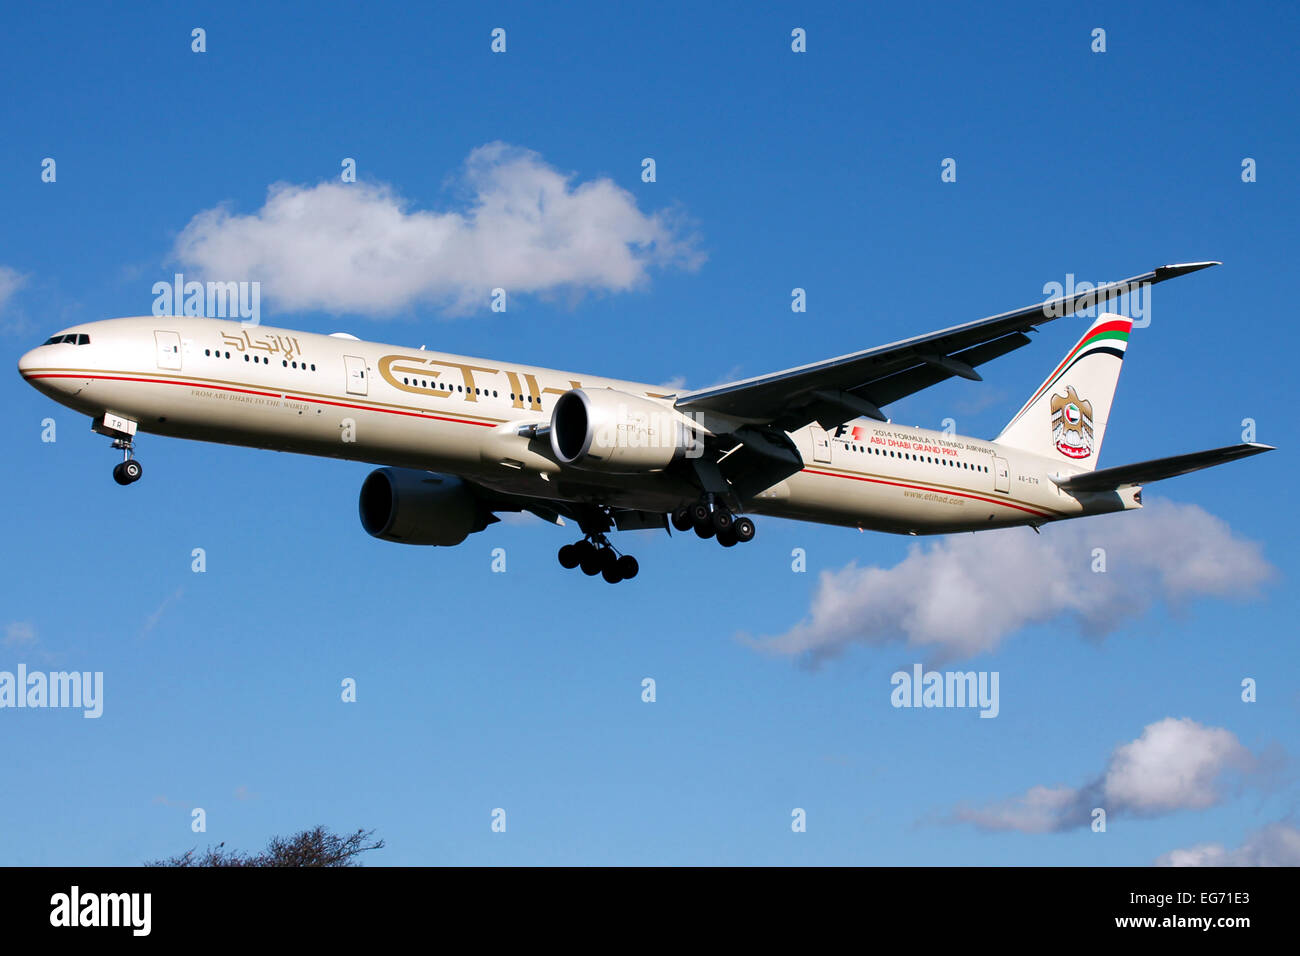 Etihad Airways Boeing 777-300 approaches runway 27L at London Heathrow airport. - Stock Image